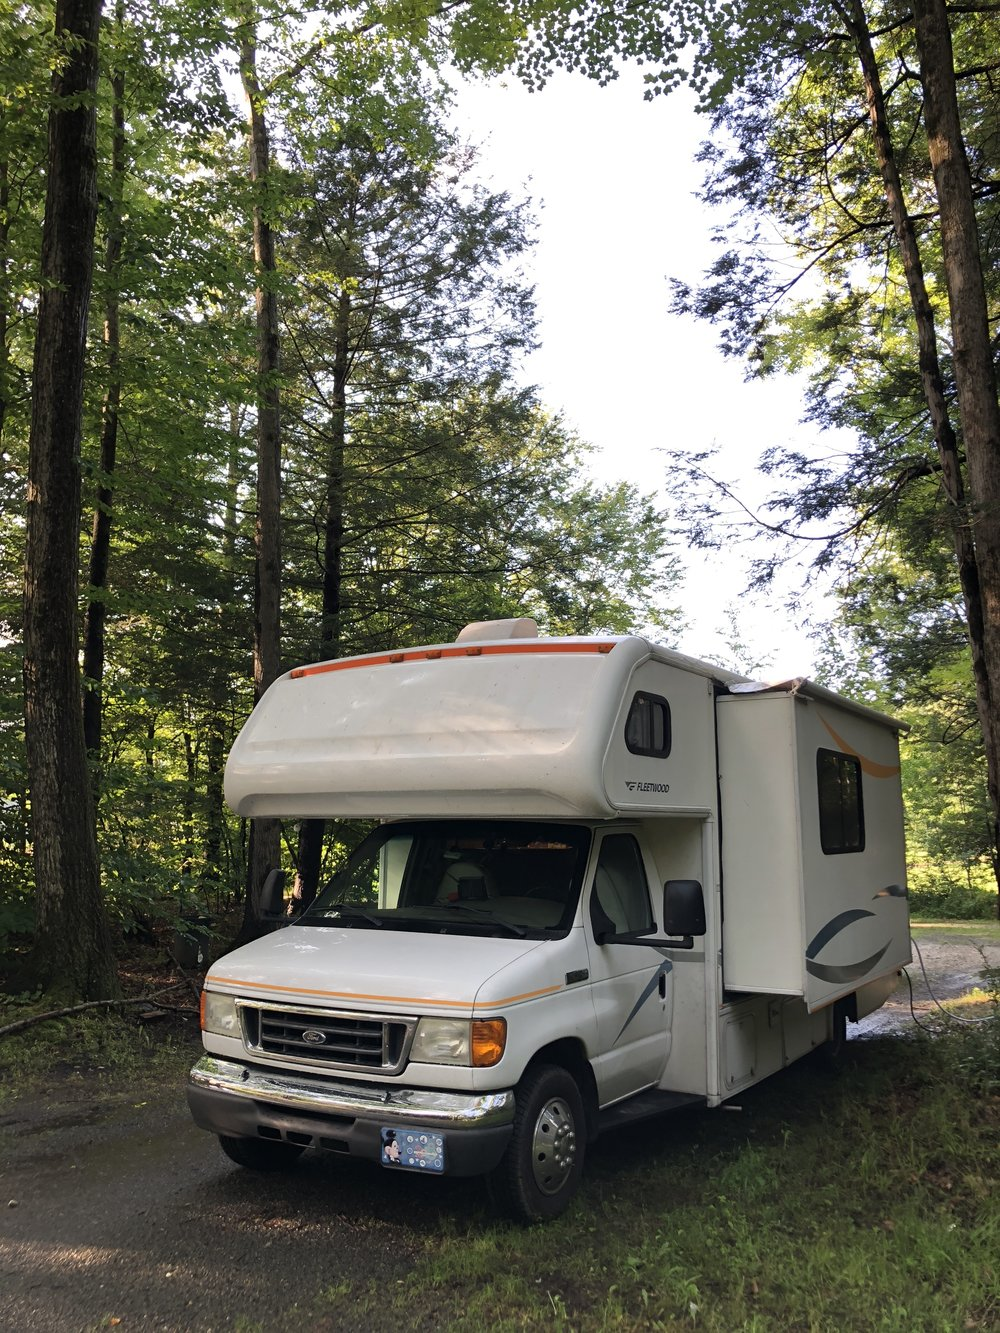 Imua at White Birch Campground in Whately, Massachusetts.